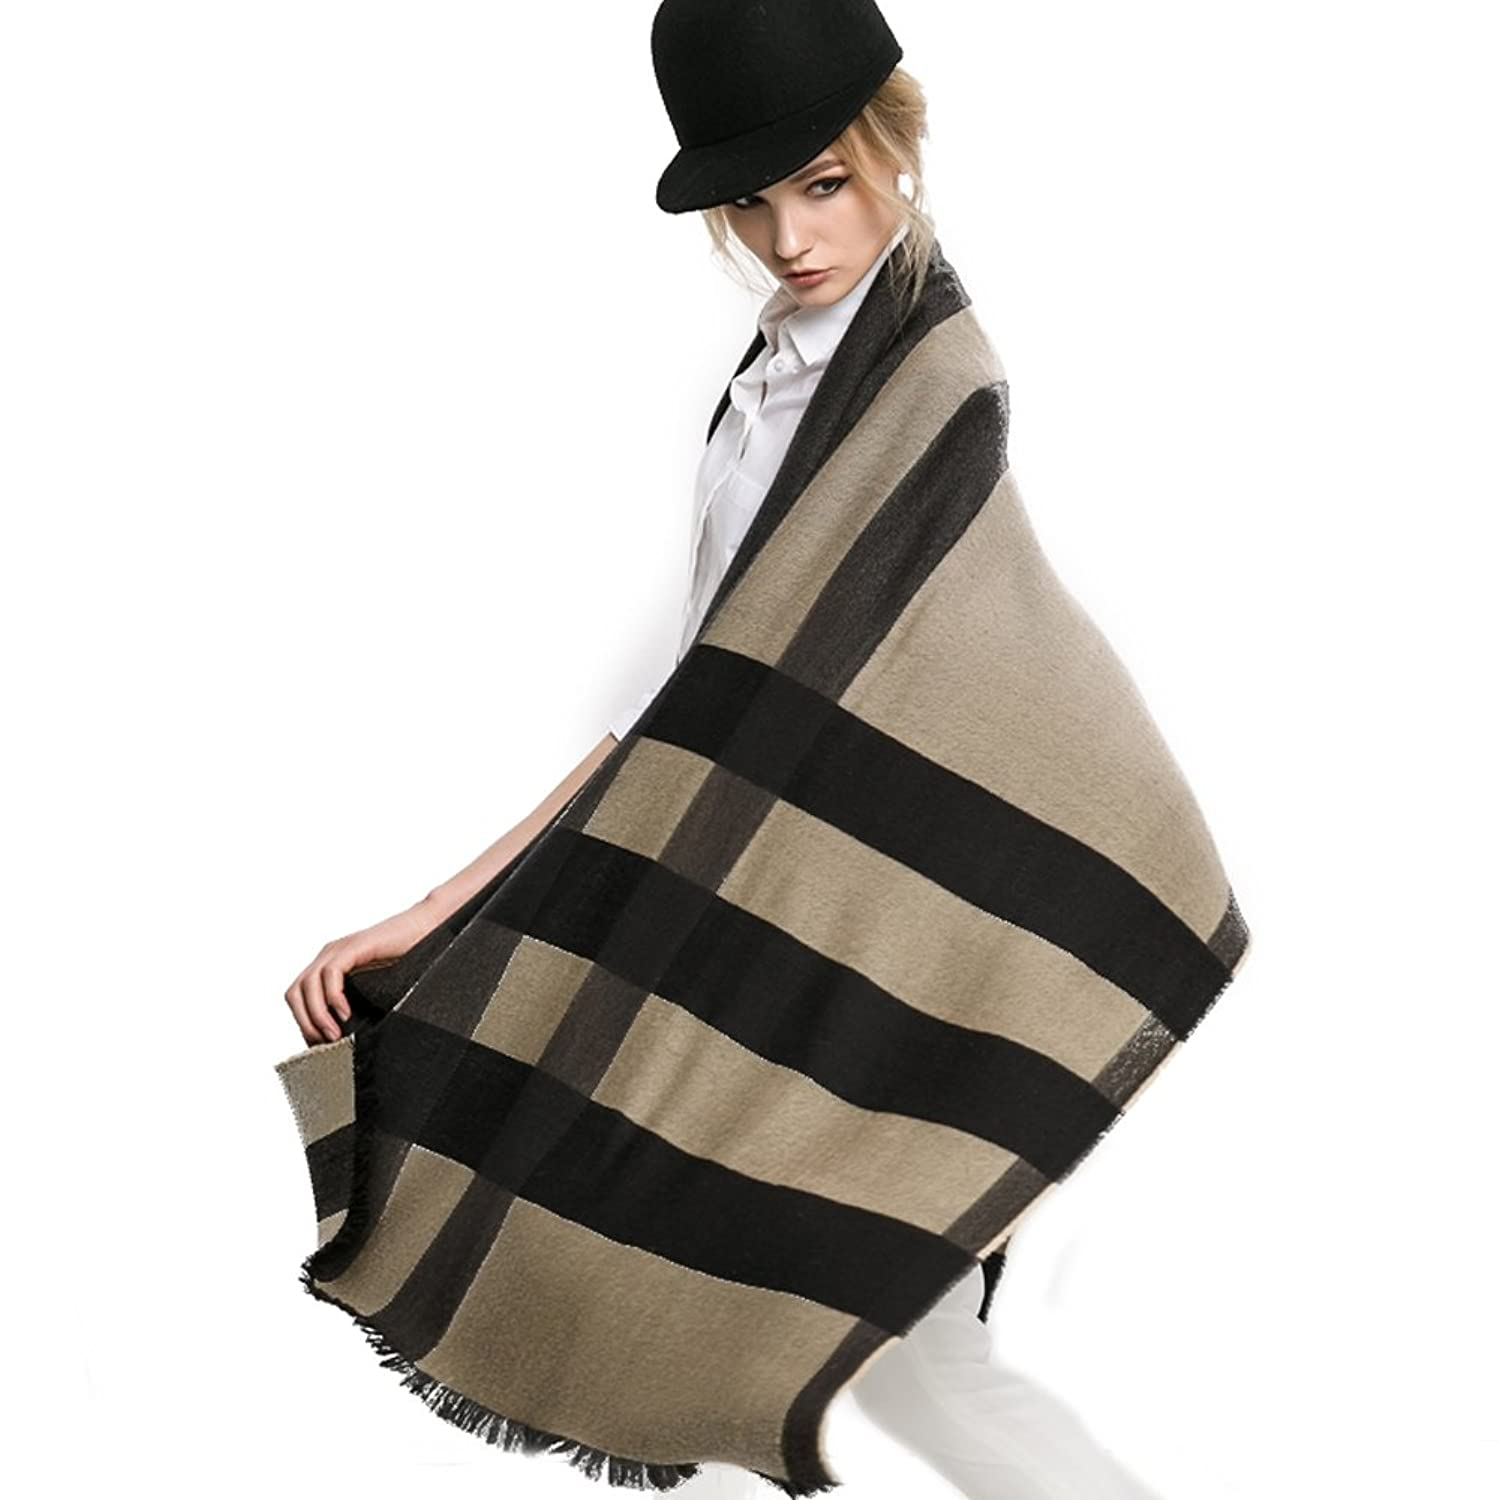 Mingxin womens long length cashmere scarf checks pattern winter autumn spring